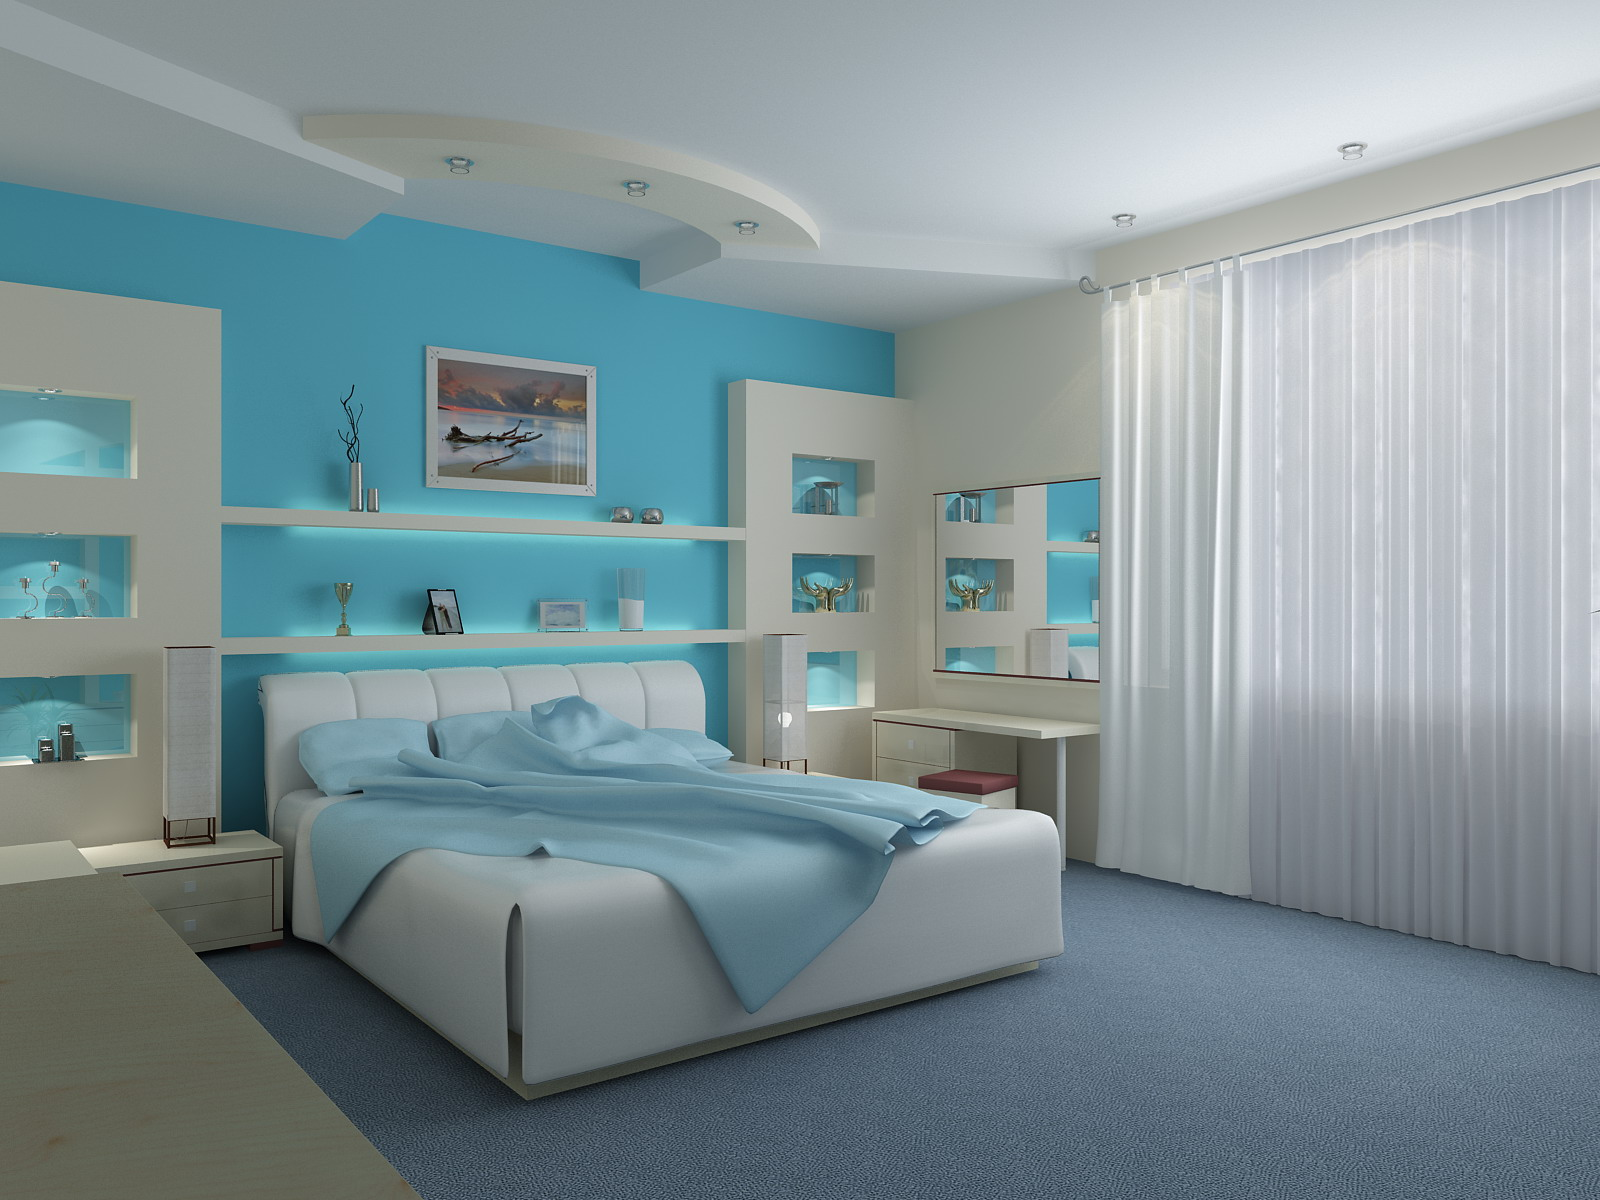 Sealike Bedroom